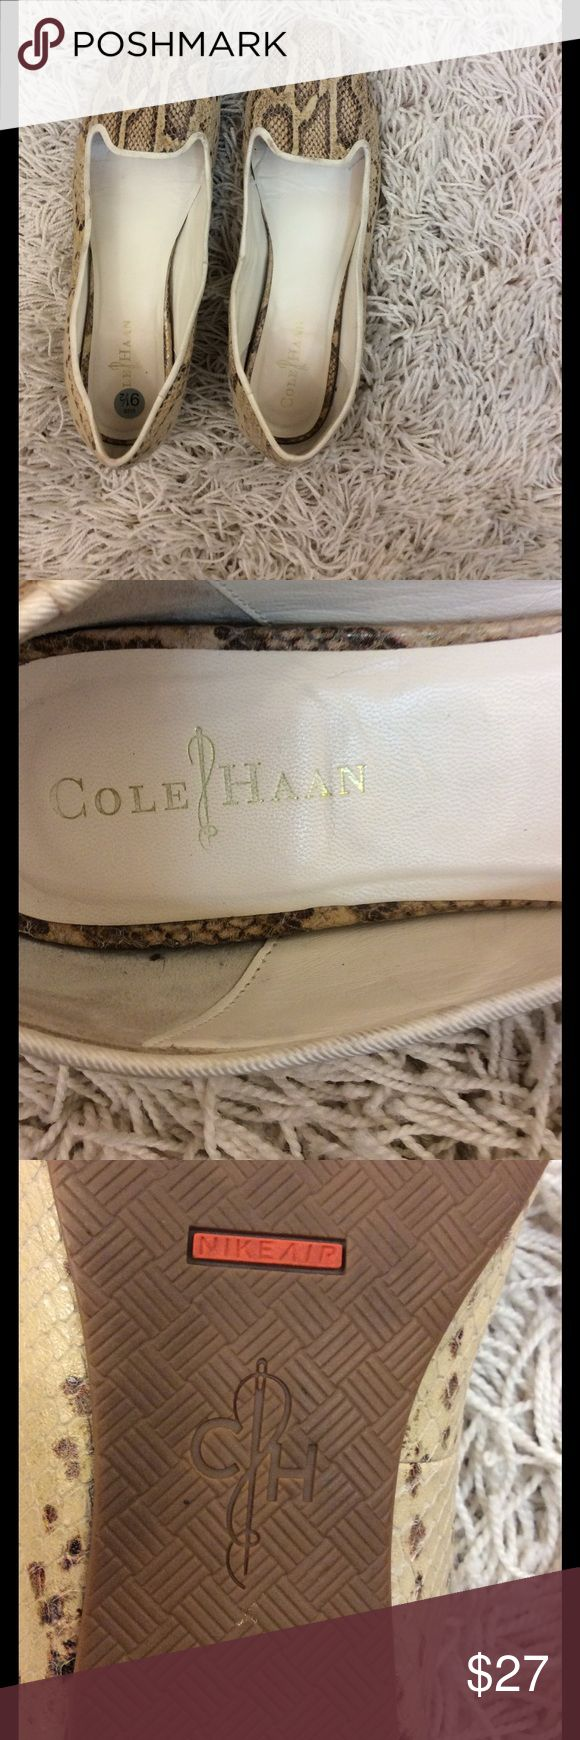 Cole Haan for Nike air snakeskin flats size 9 1/2 Nice Cole Haan for Nike air snakeskin brown and cream flats size 9 1/2 Gently worn condition Shows some discoloration in heel area otherwise very clean Cole Haan for Nike air Shoes Flats & Loafers